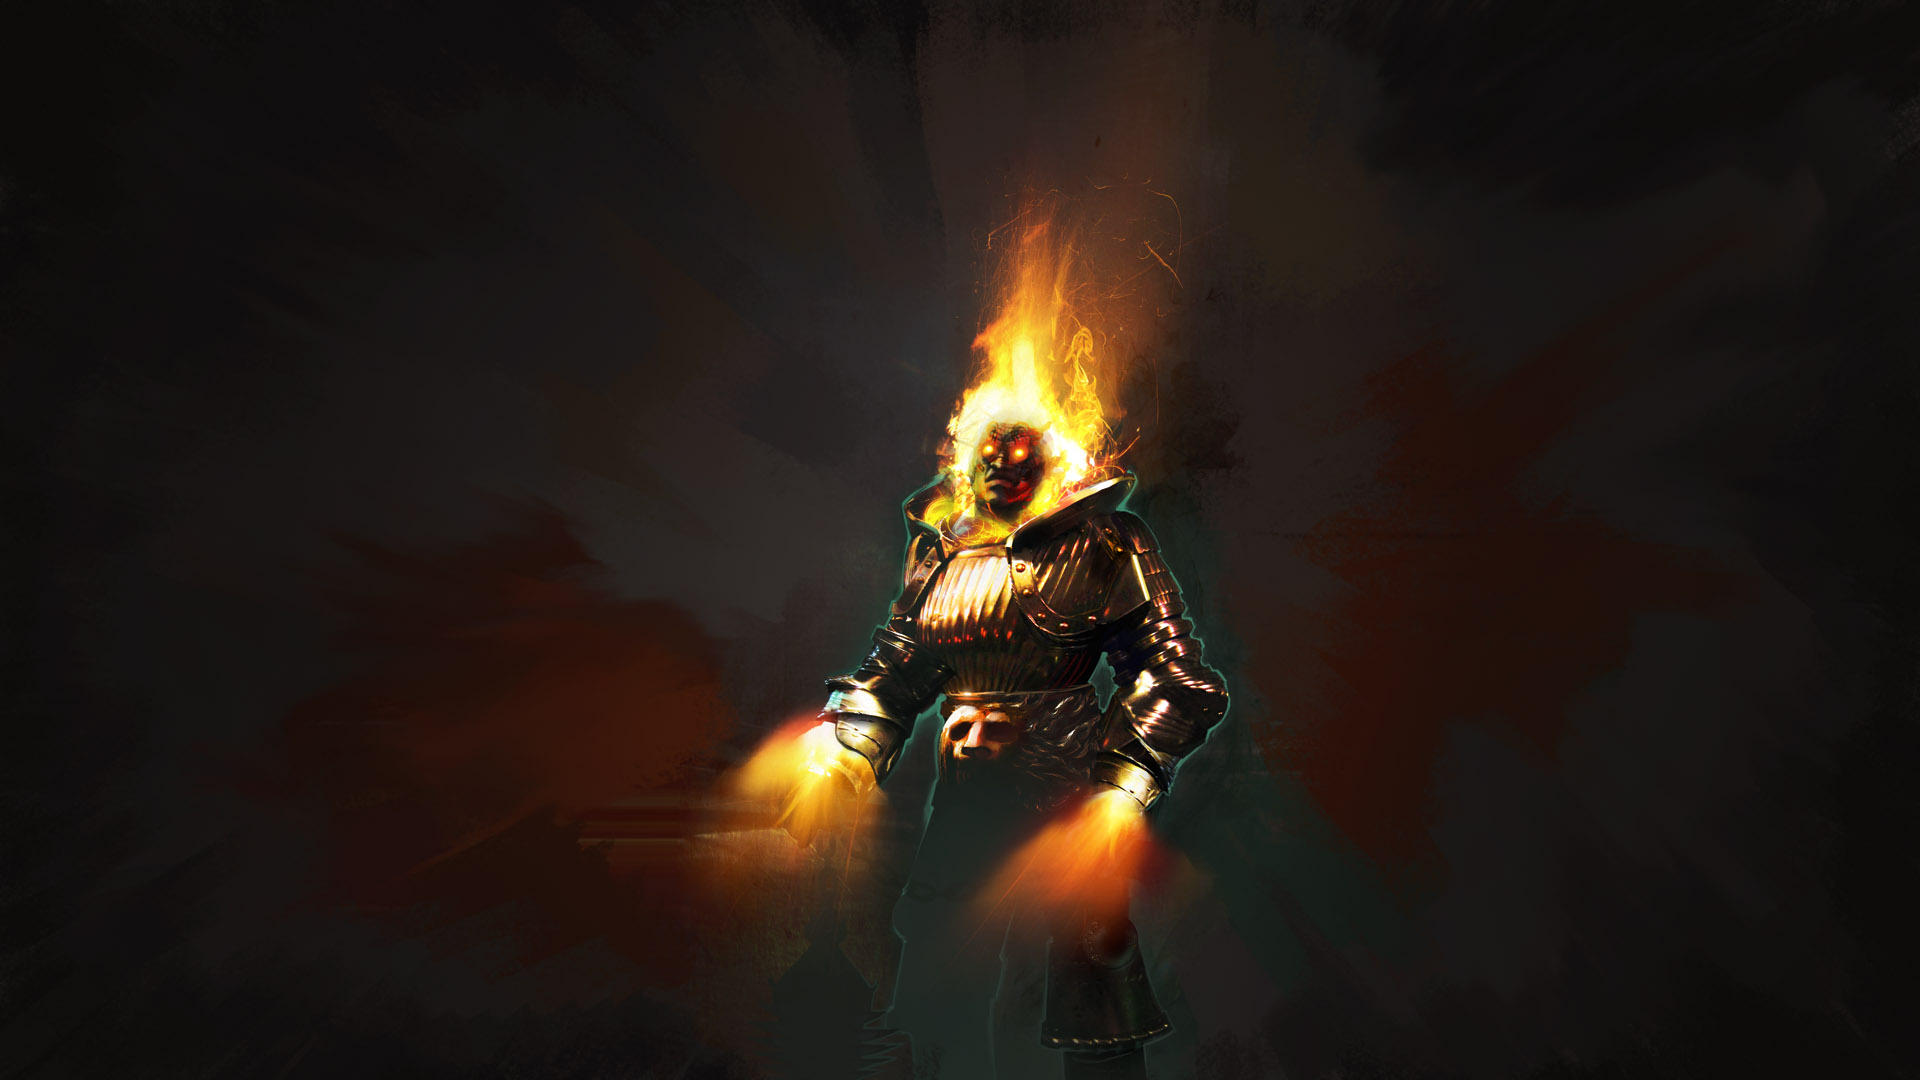 Path Of Exile Wallpaper: Path Of Exile - King Kaom